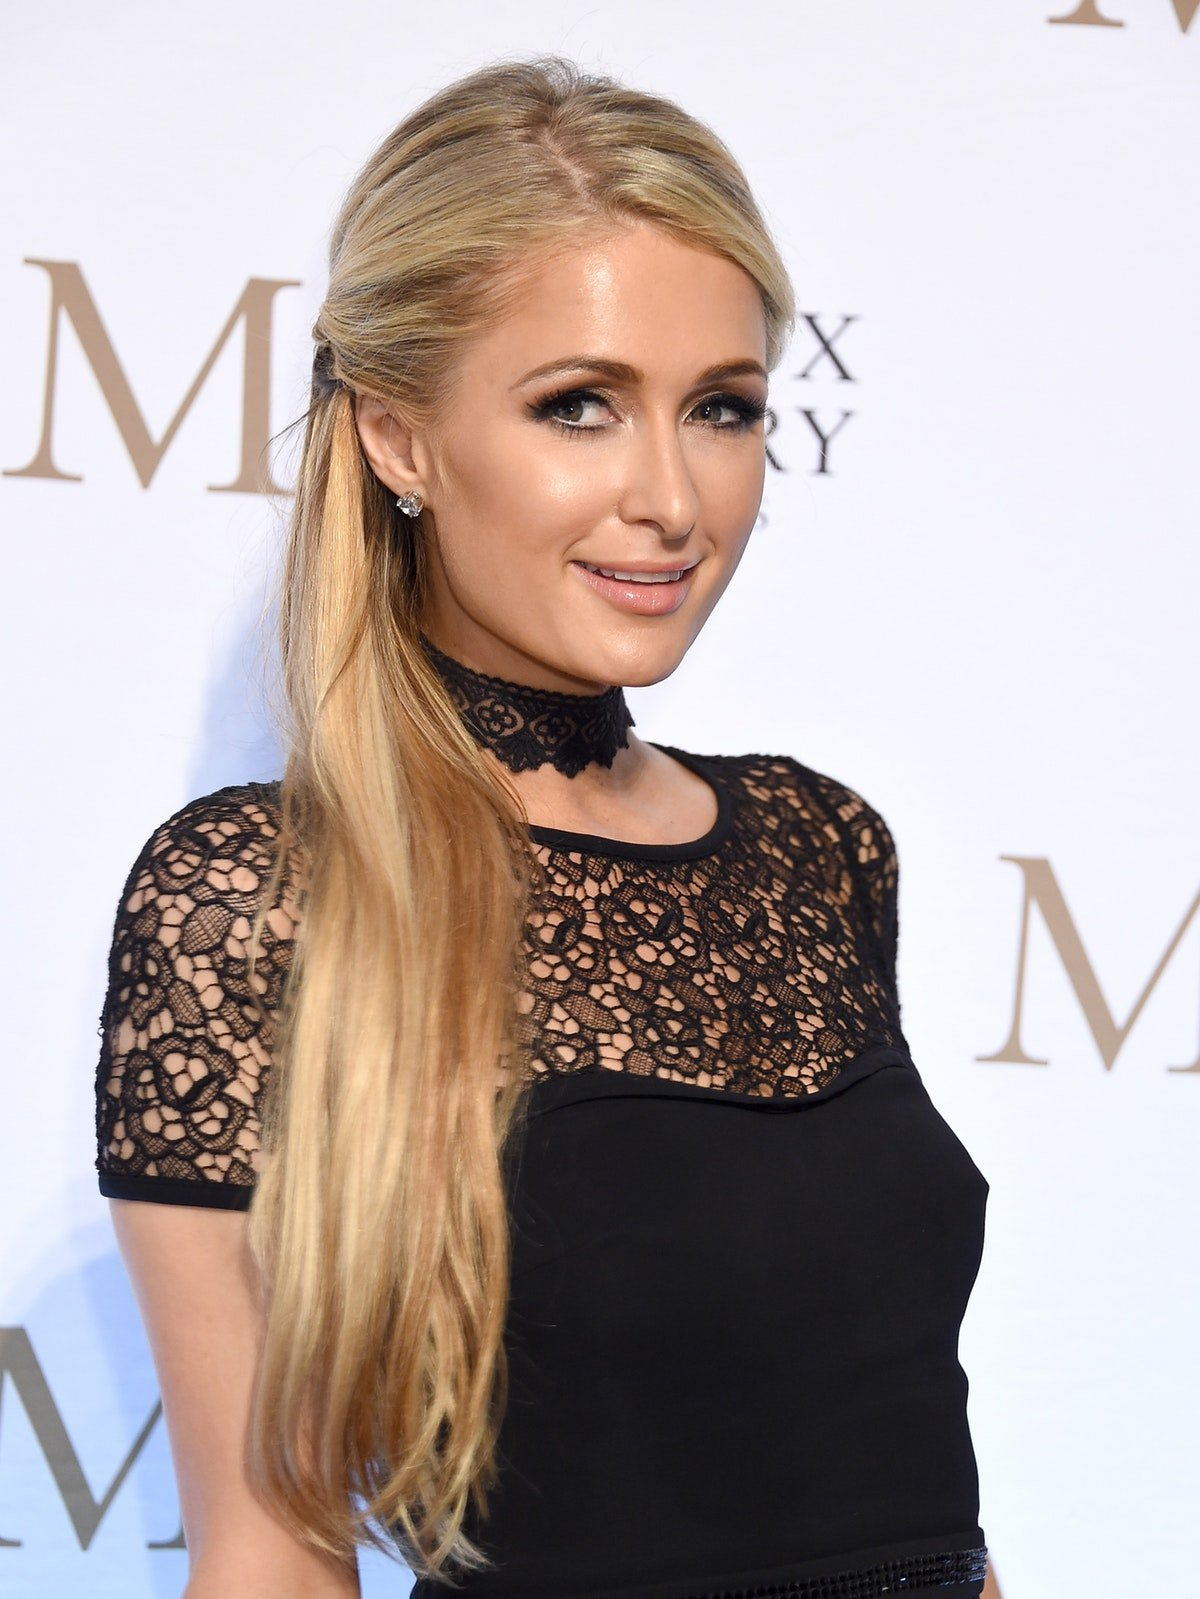 If You Still Think Paris Hilton Is Like Her 'Simple Life' Character, She Has Some News For You